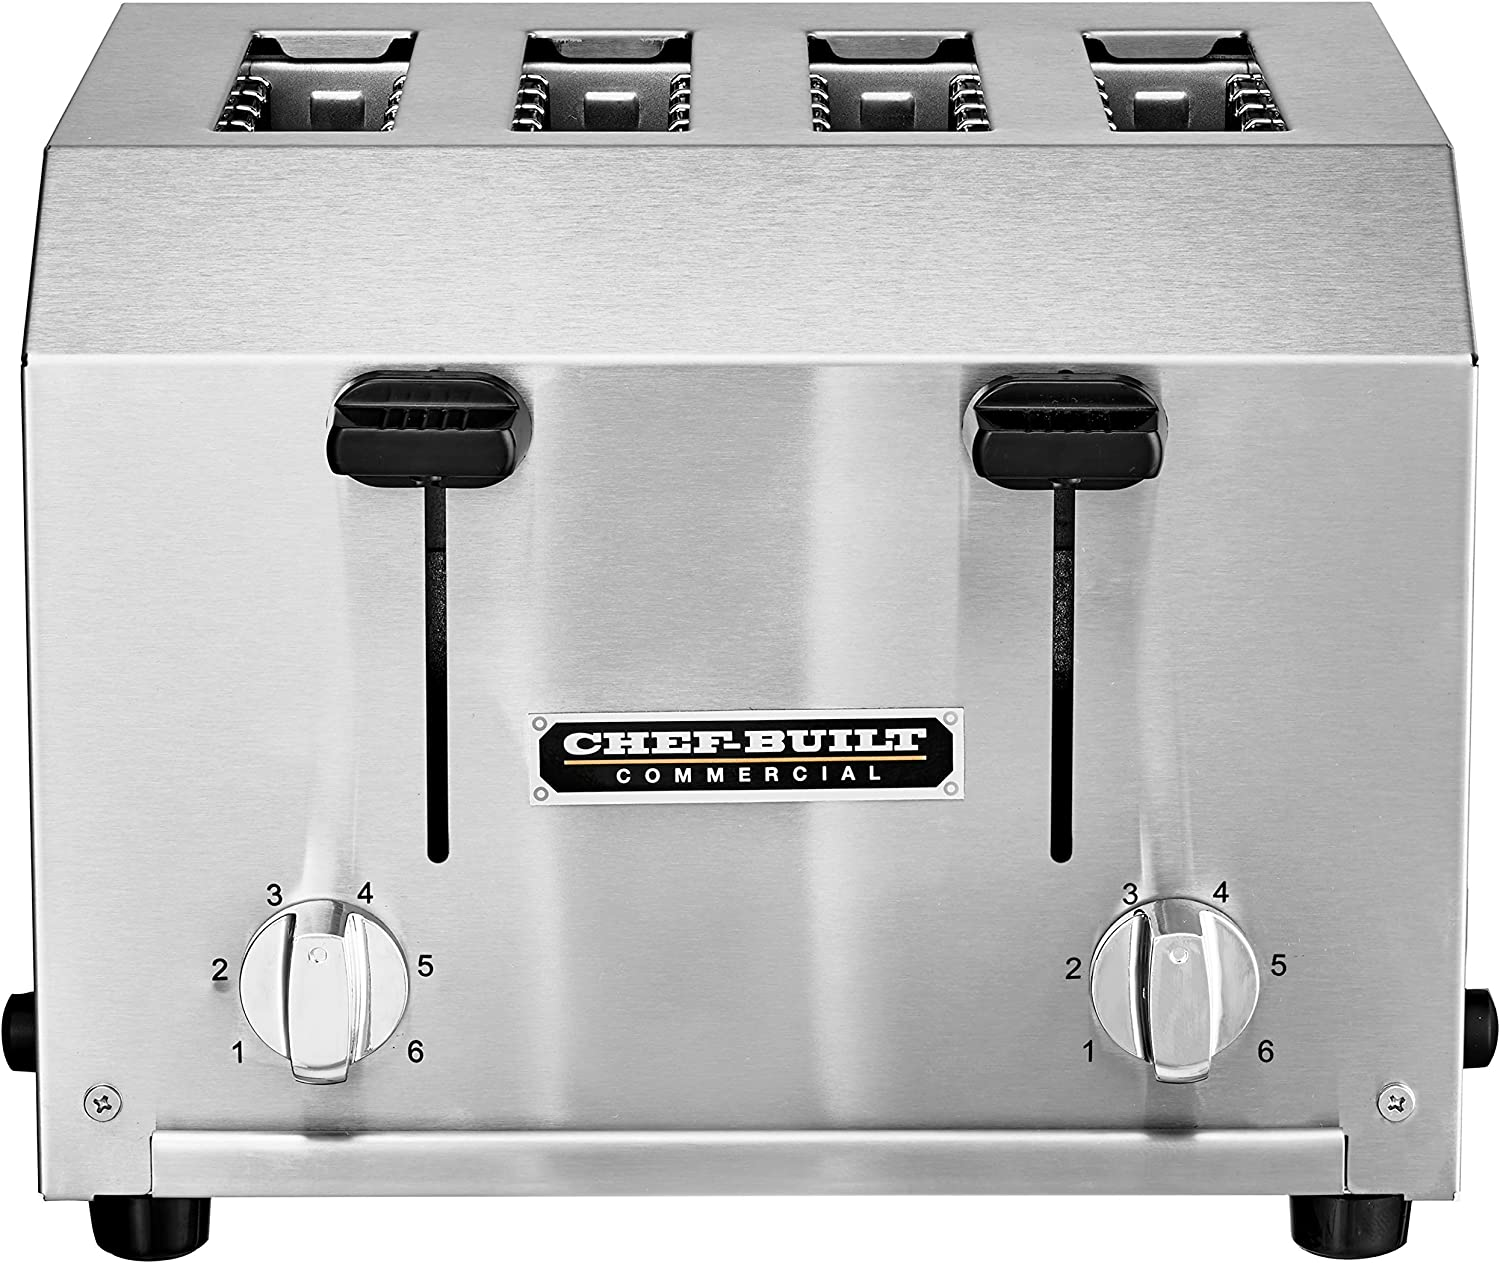 CHEF-BUILT (CCT-250) Heavy Duty Commercial 4 Slice Toaster